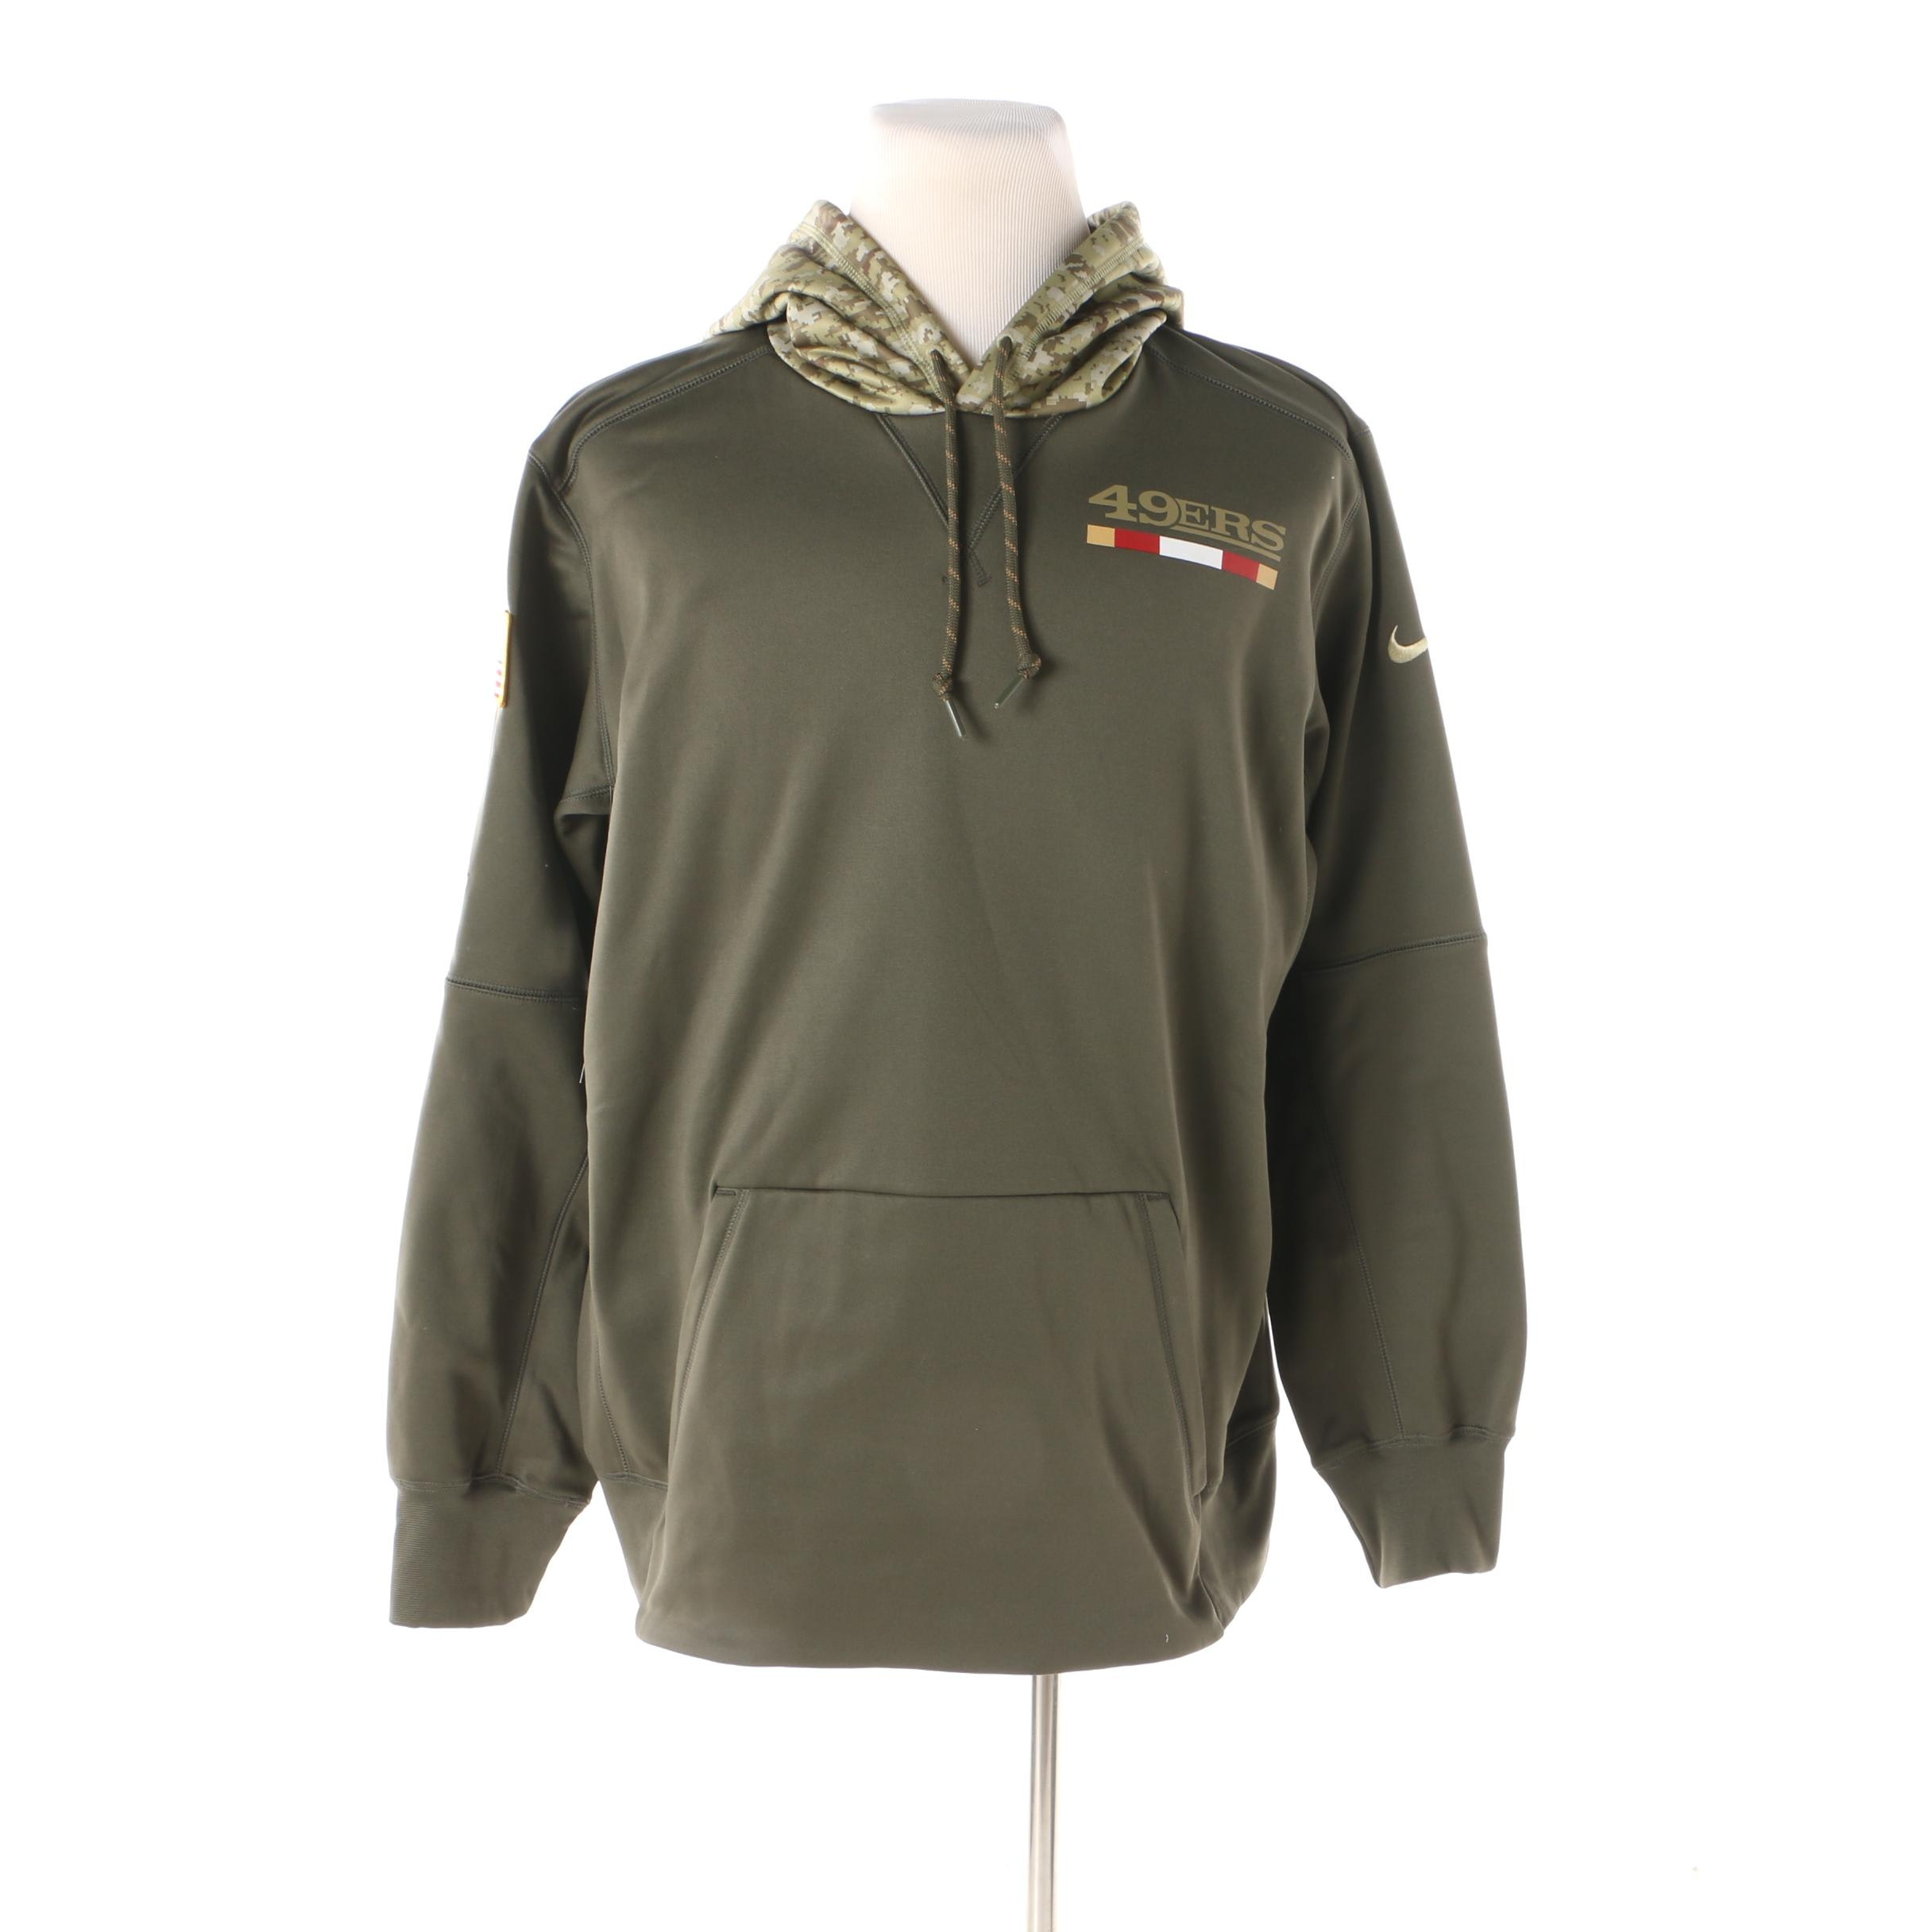 Nike Therma Dri-Fit NFL Licensed Salute to Service Hooded Shirt